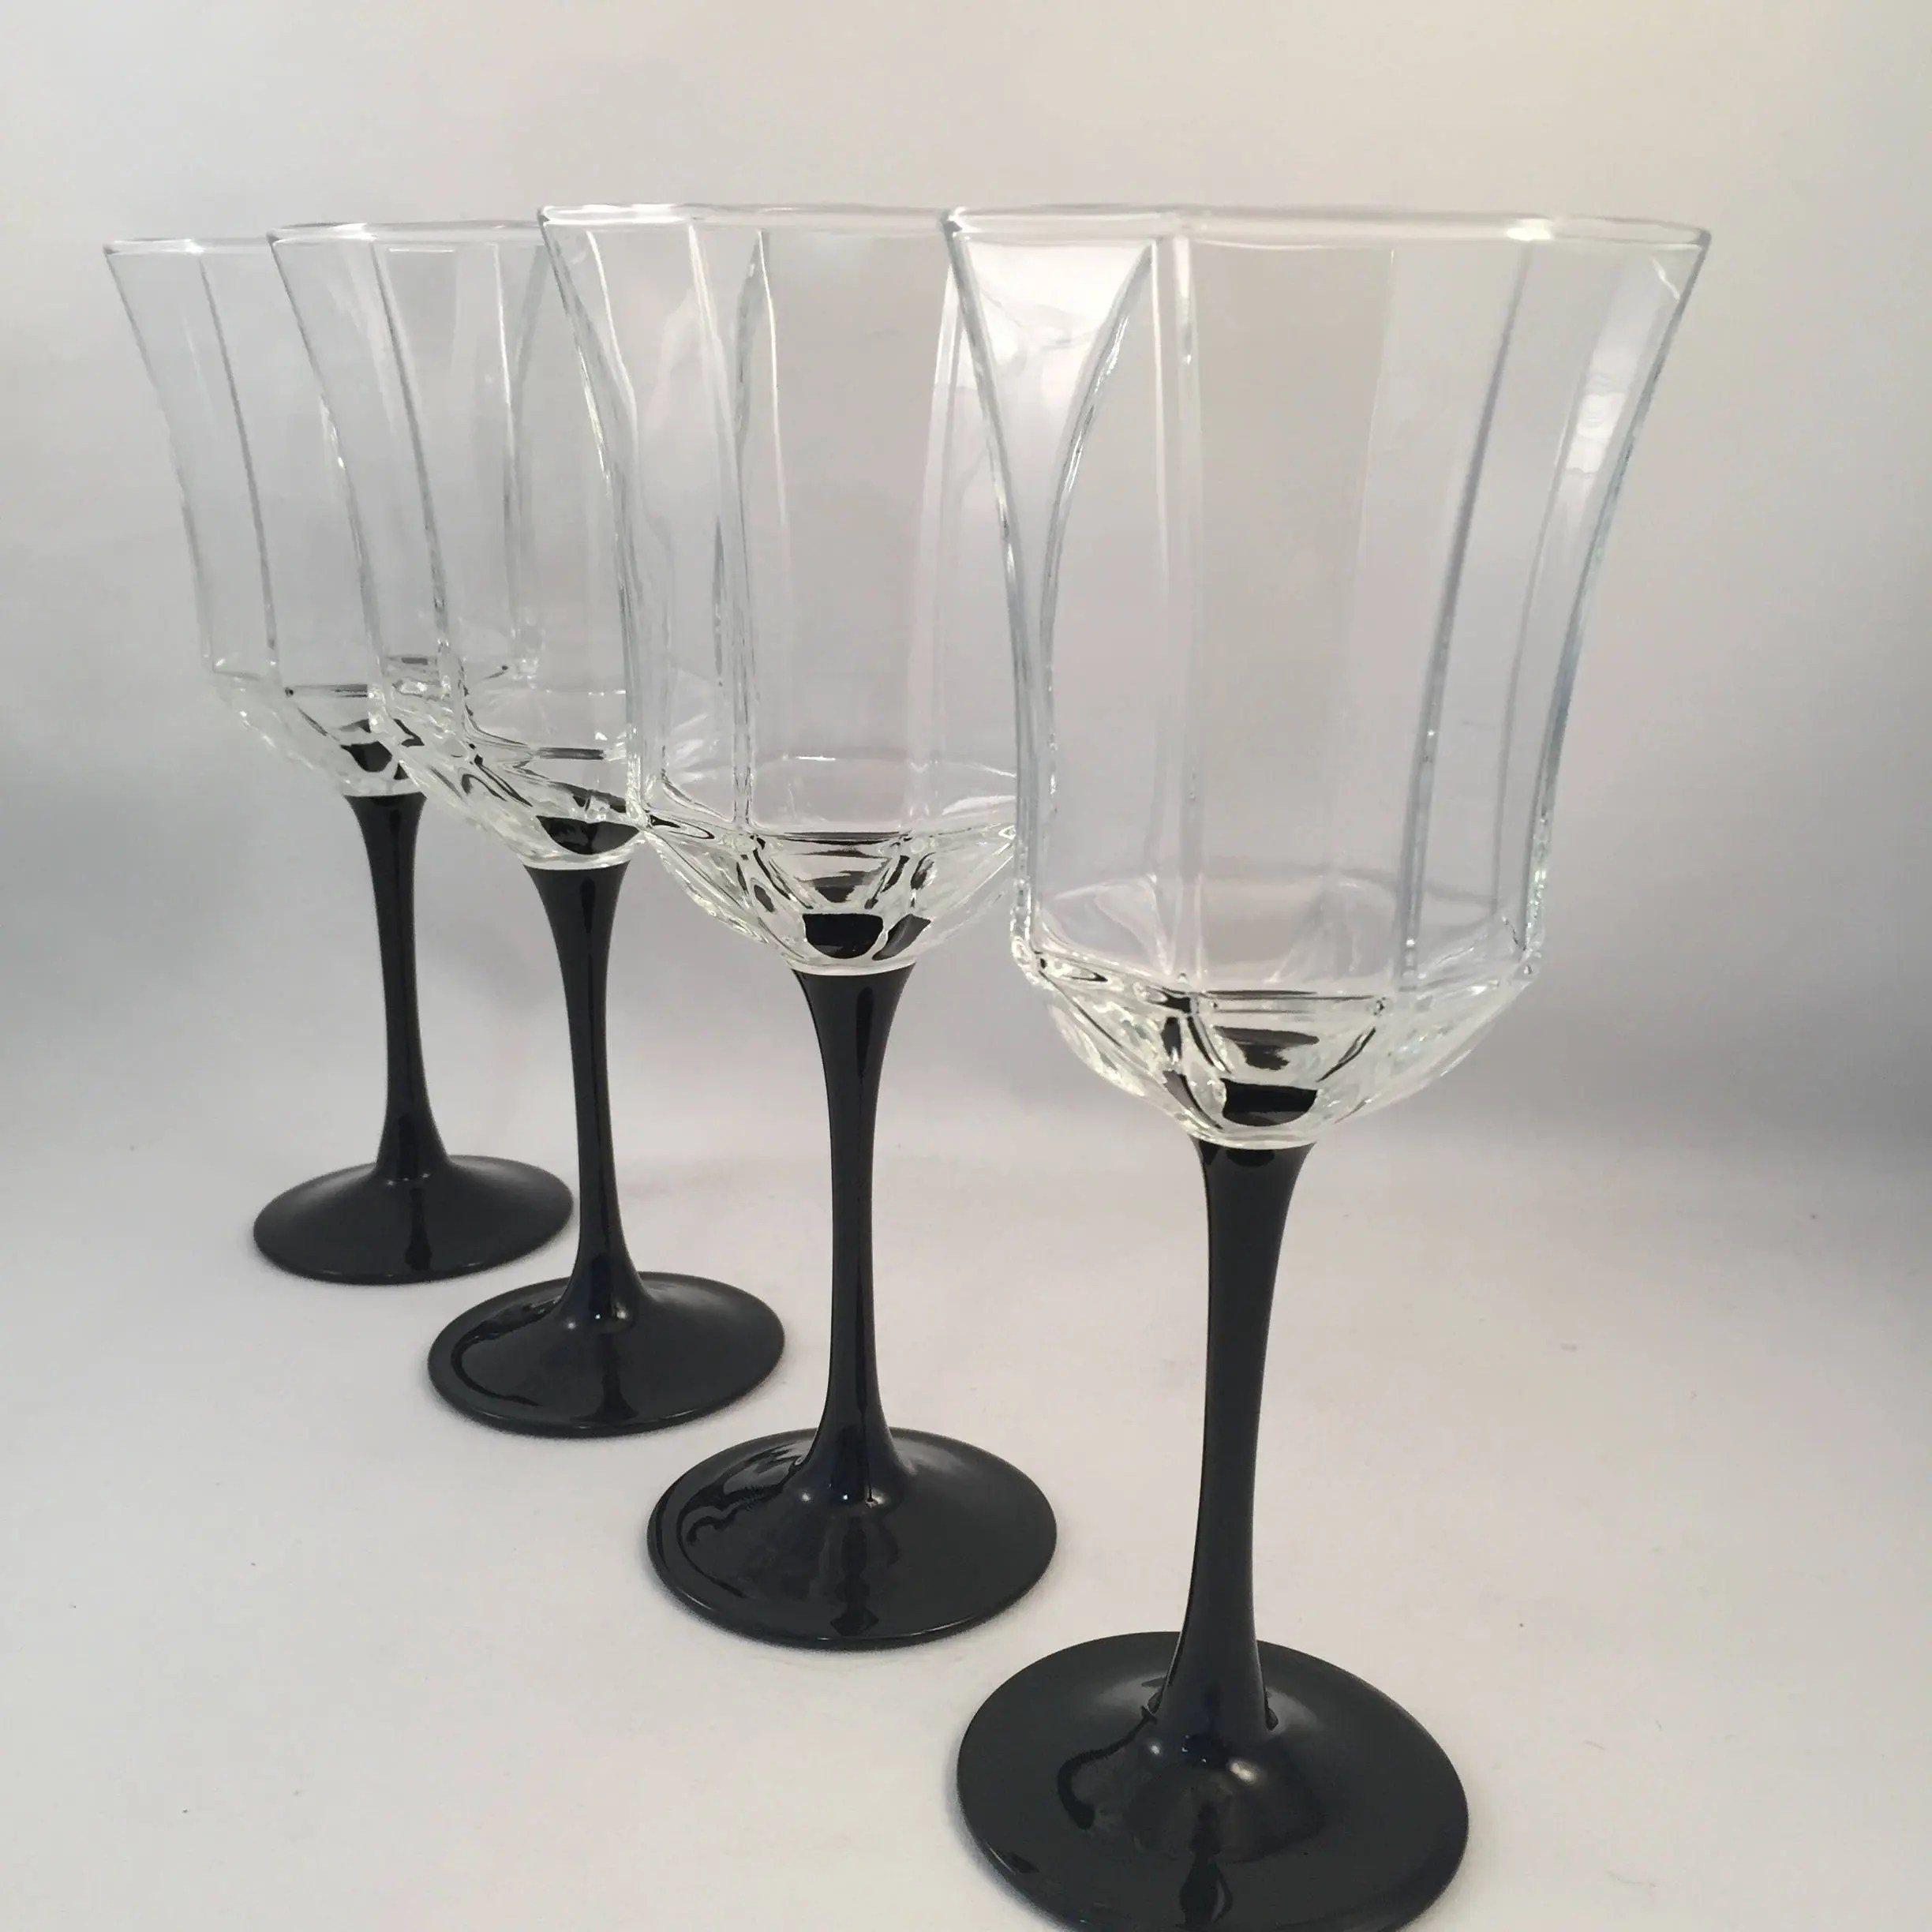 Luminarc Glass Set Of 4 Luminarc France Octigon Black Stem Glasses Unique Design Holds 8 Oz Beautiful Black Stemmed Glasses Luminarc Black Stem Glass